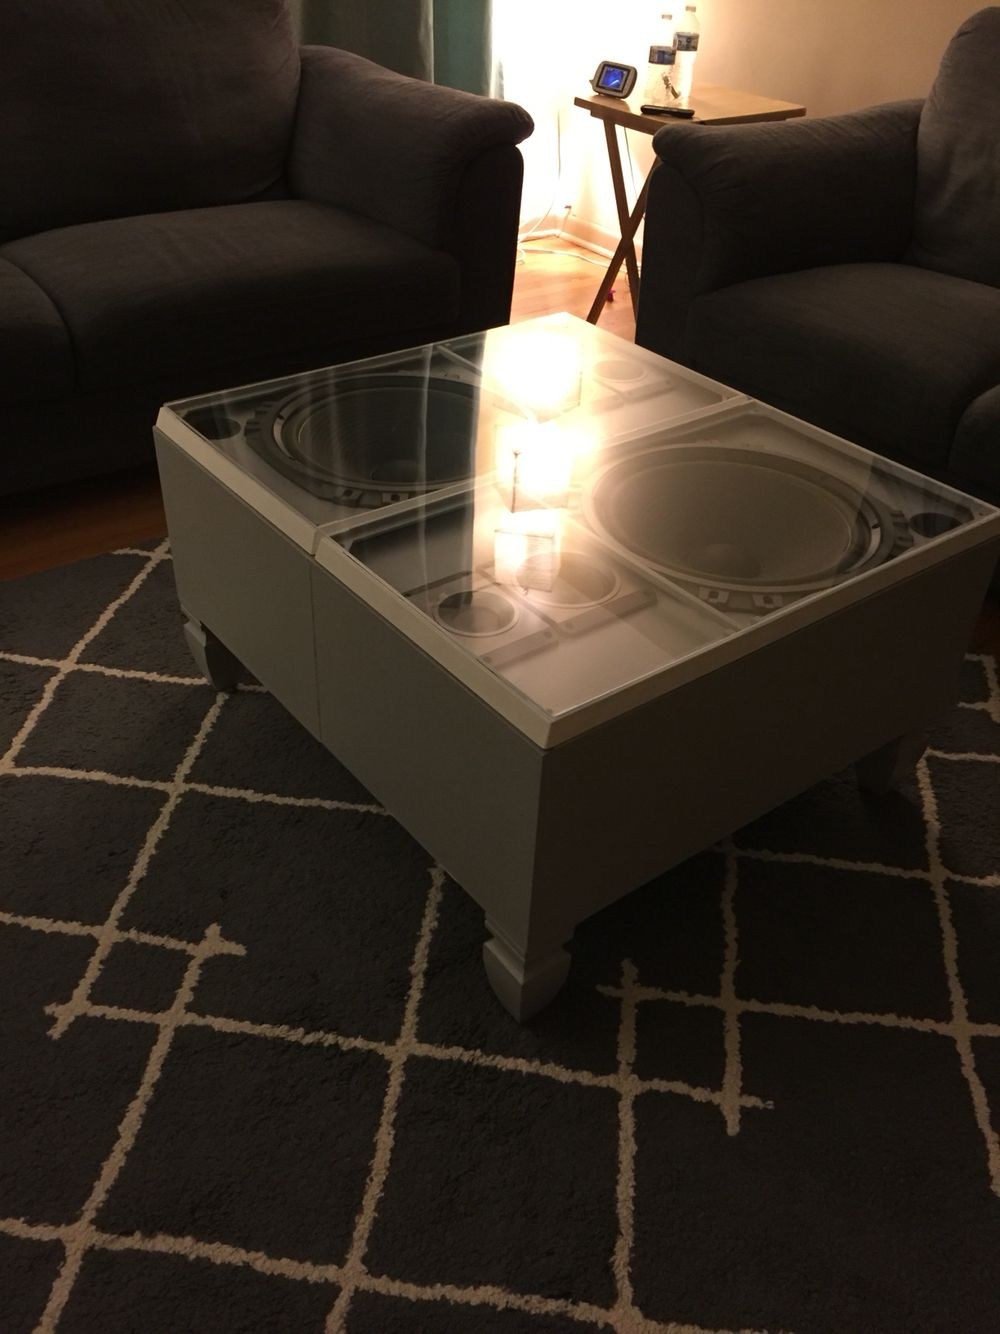 Skema box speaker woofer search results woodworking project ideas - Coffee Table Made From Two Speakers Technics Woodworking Projectsdiy Projectsbasement Ideasspeakershome Ideasdiy